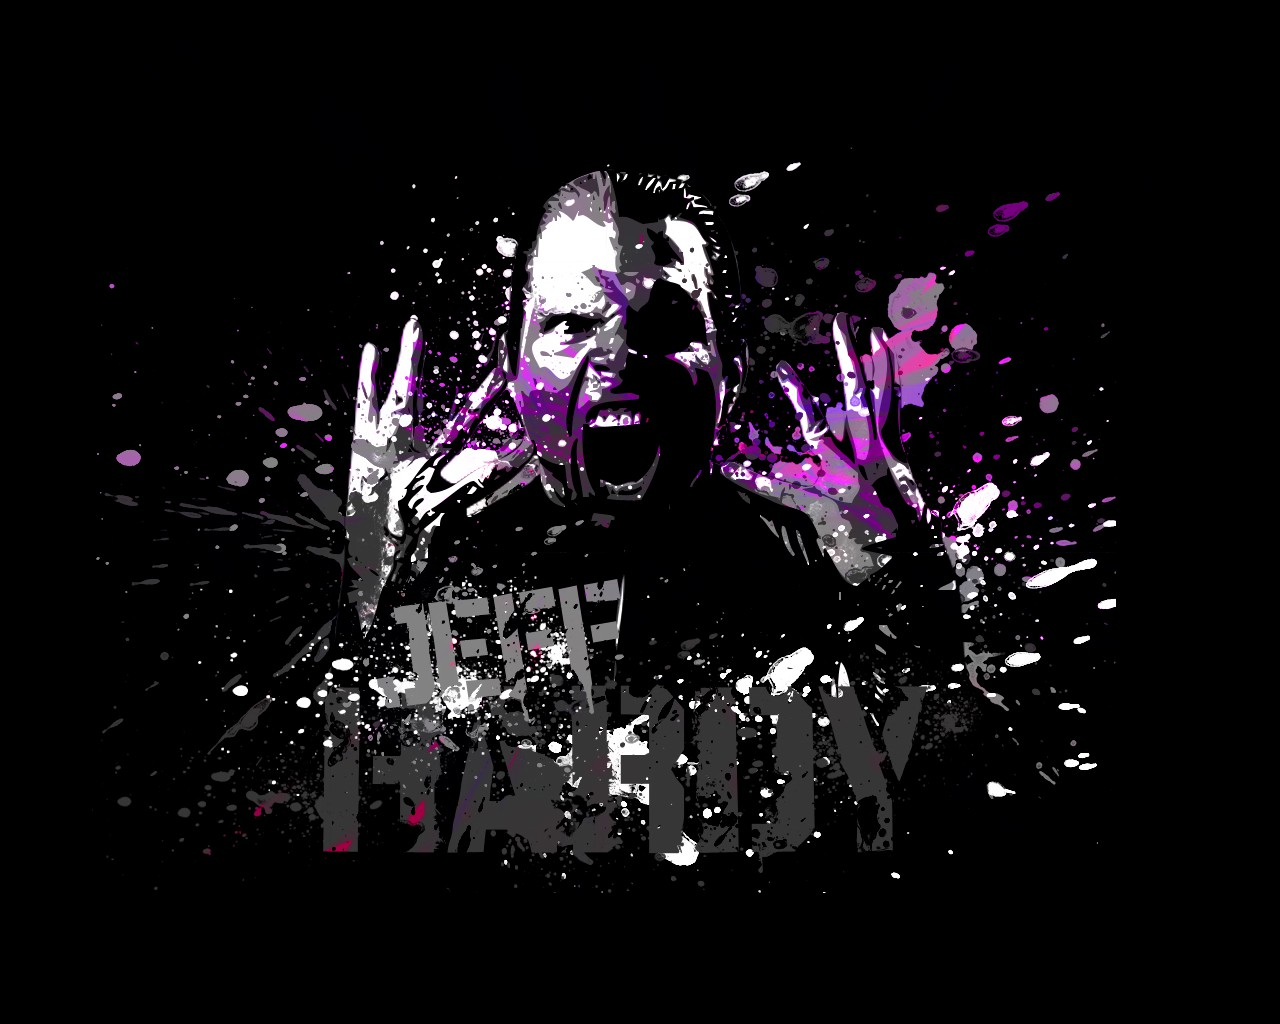 wwe superstar jeff hardy hd 3d cool wallpaper